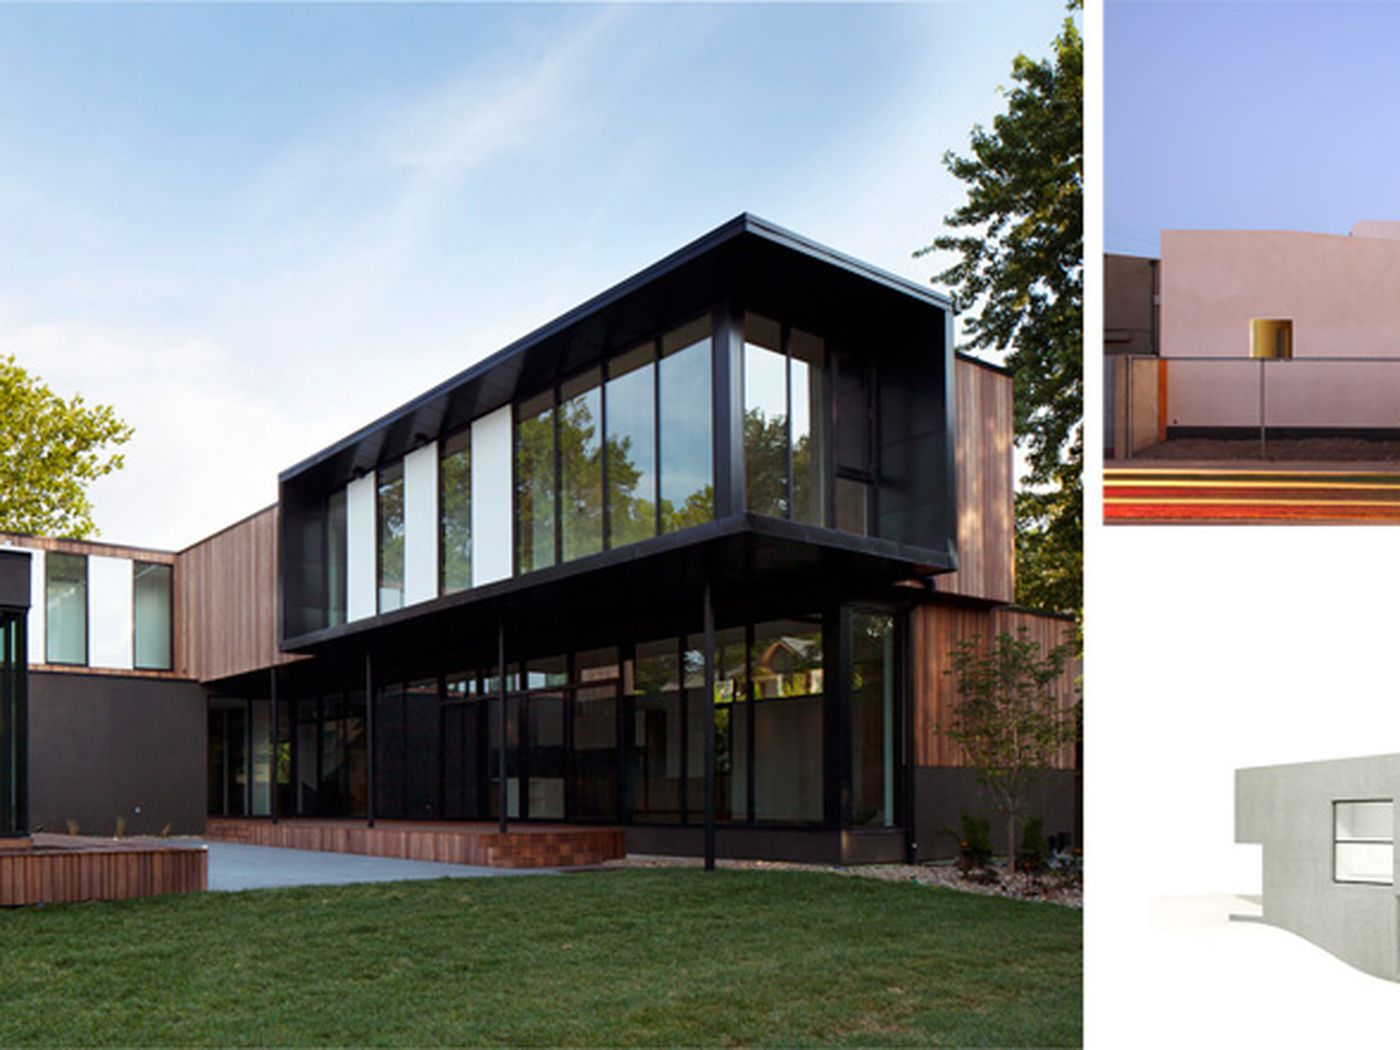 Why modern architecture came back and what it looks like now curbed